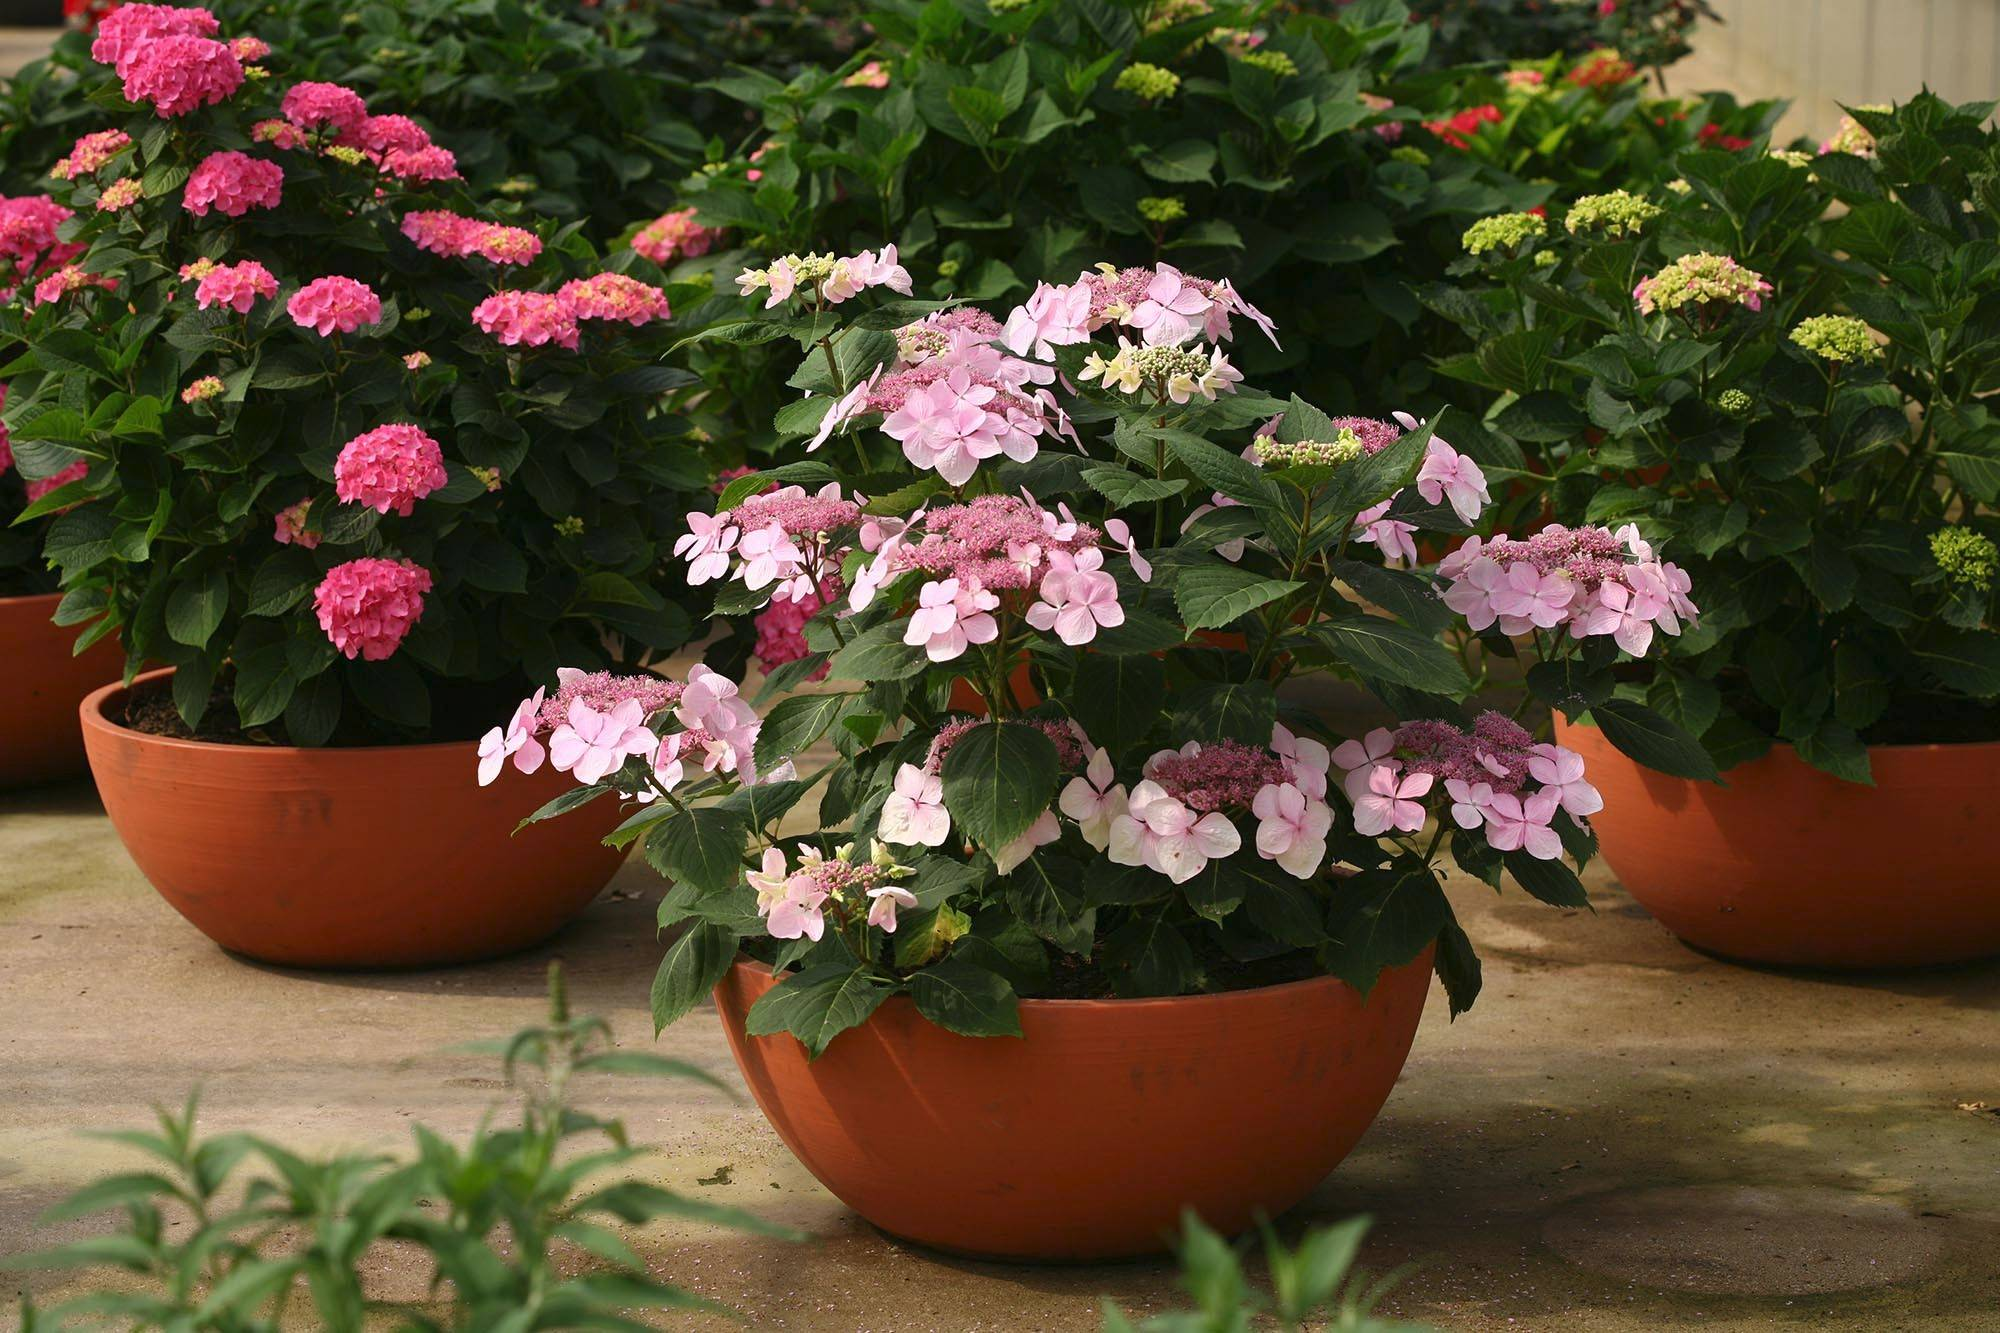 Let's Dance Diva, another reblooming lacecap hydrangea from Proven Winners, was developed for its oversize blooms.